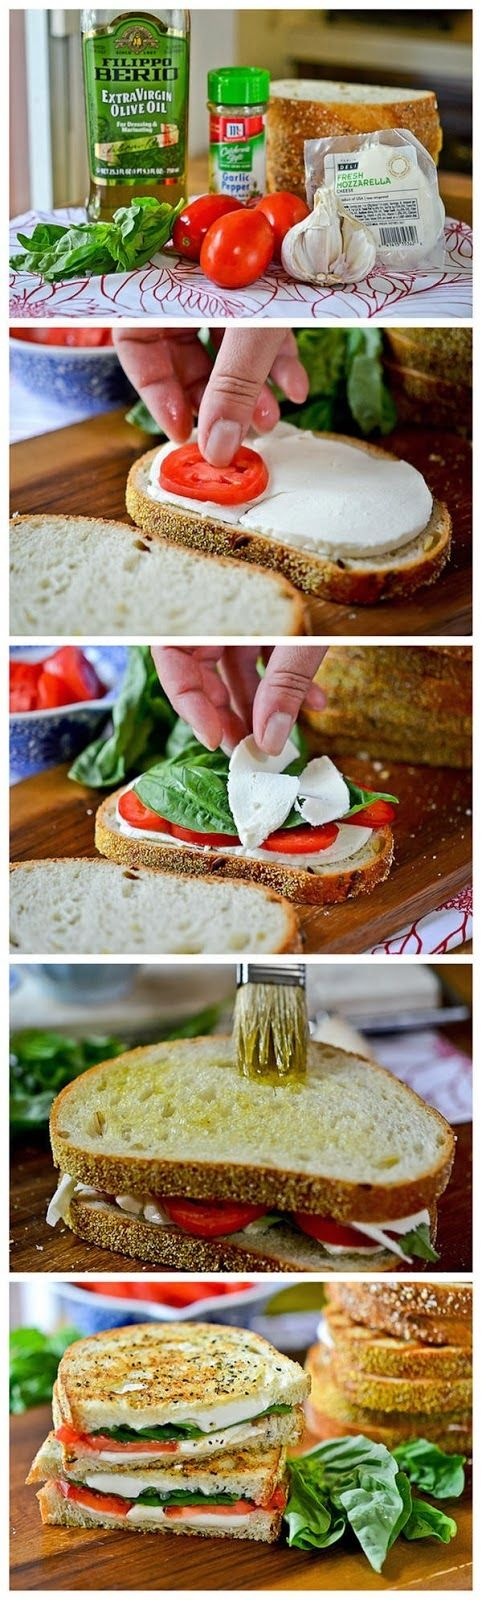 Grilled Margherita Sandwiches - everrecipes